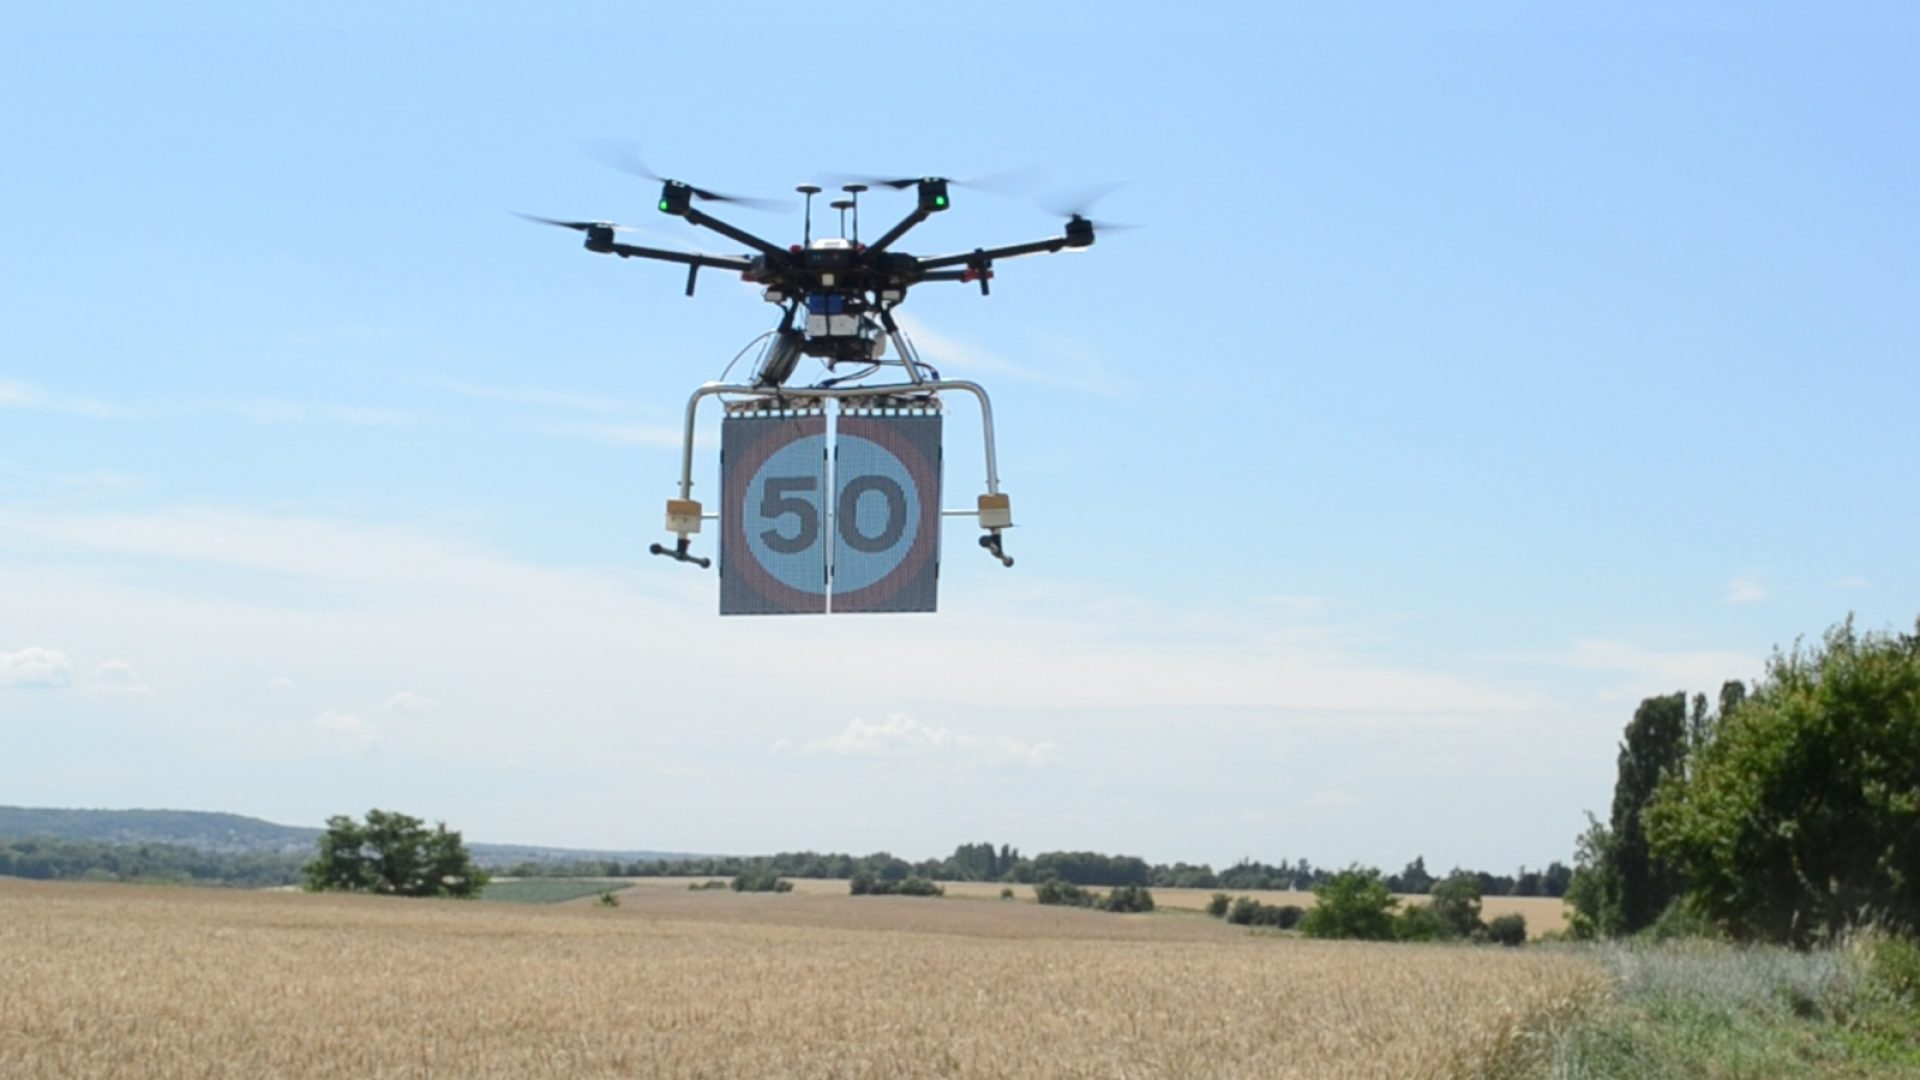 Drone support adhesive LED screen display